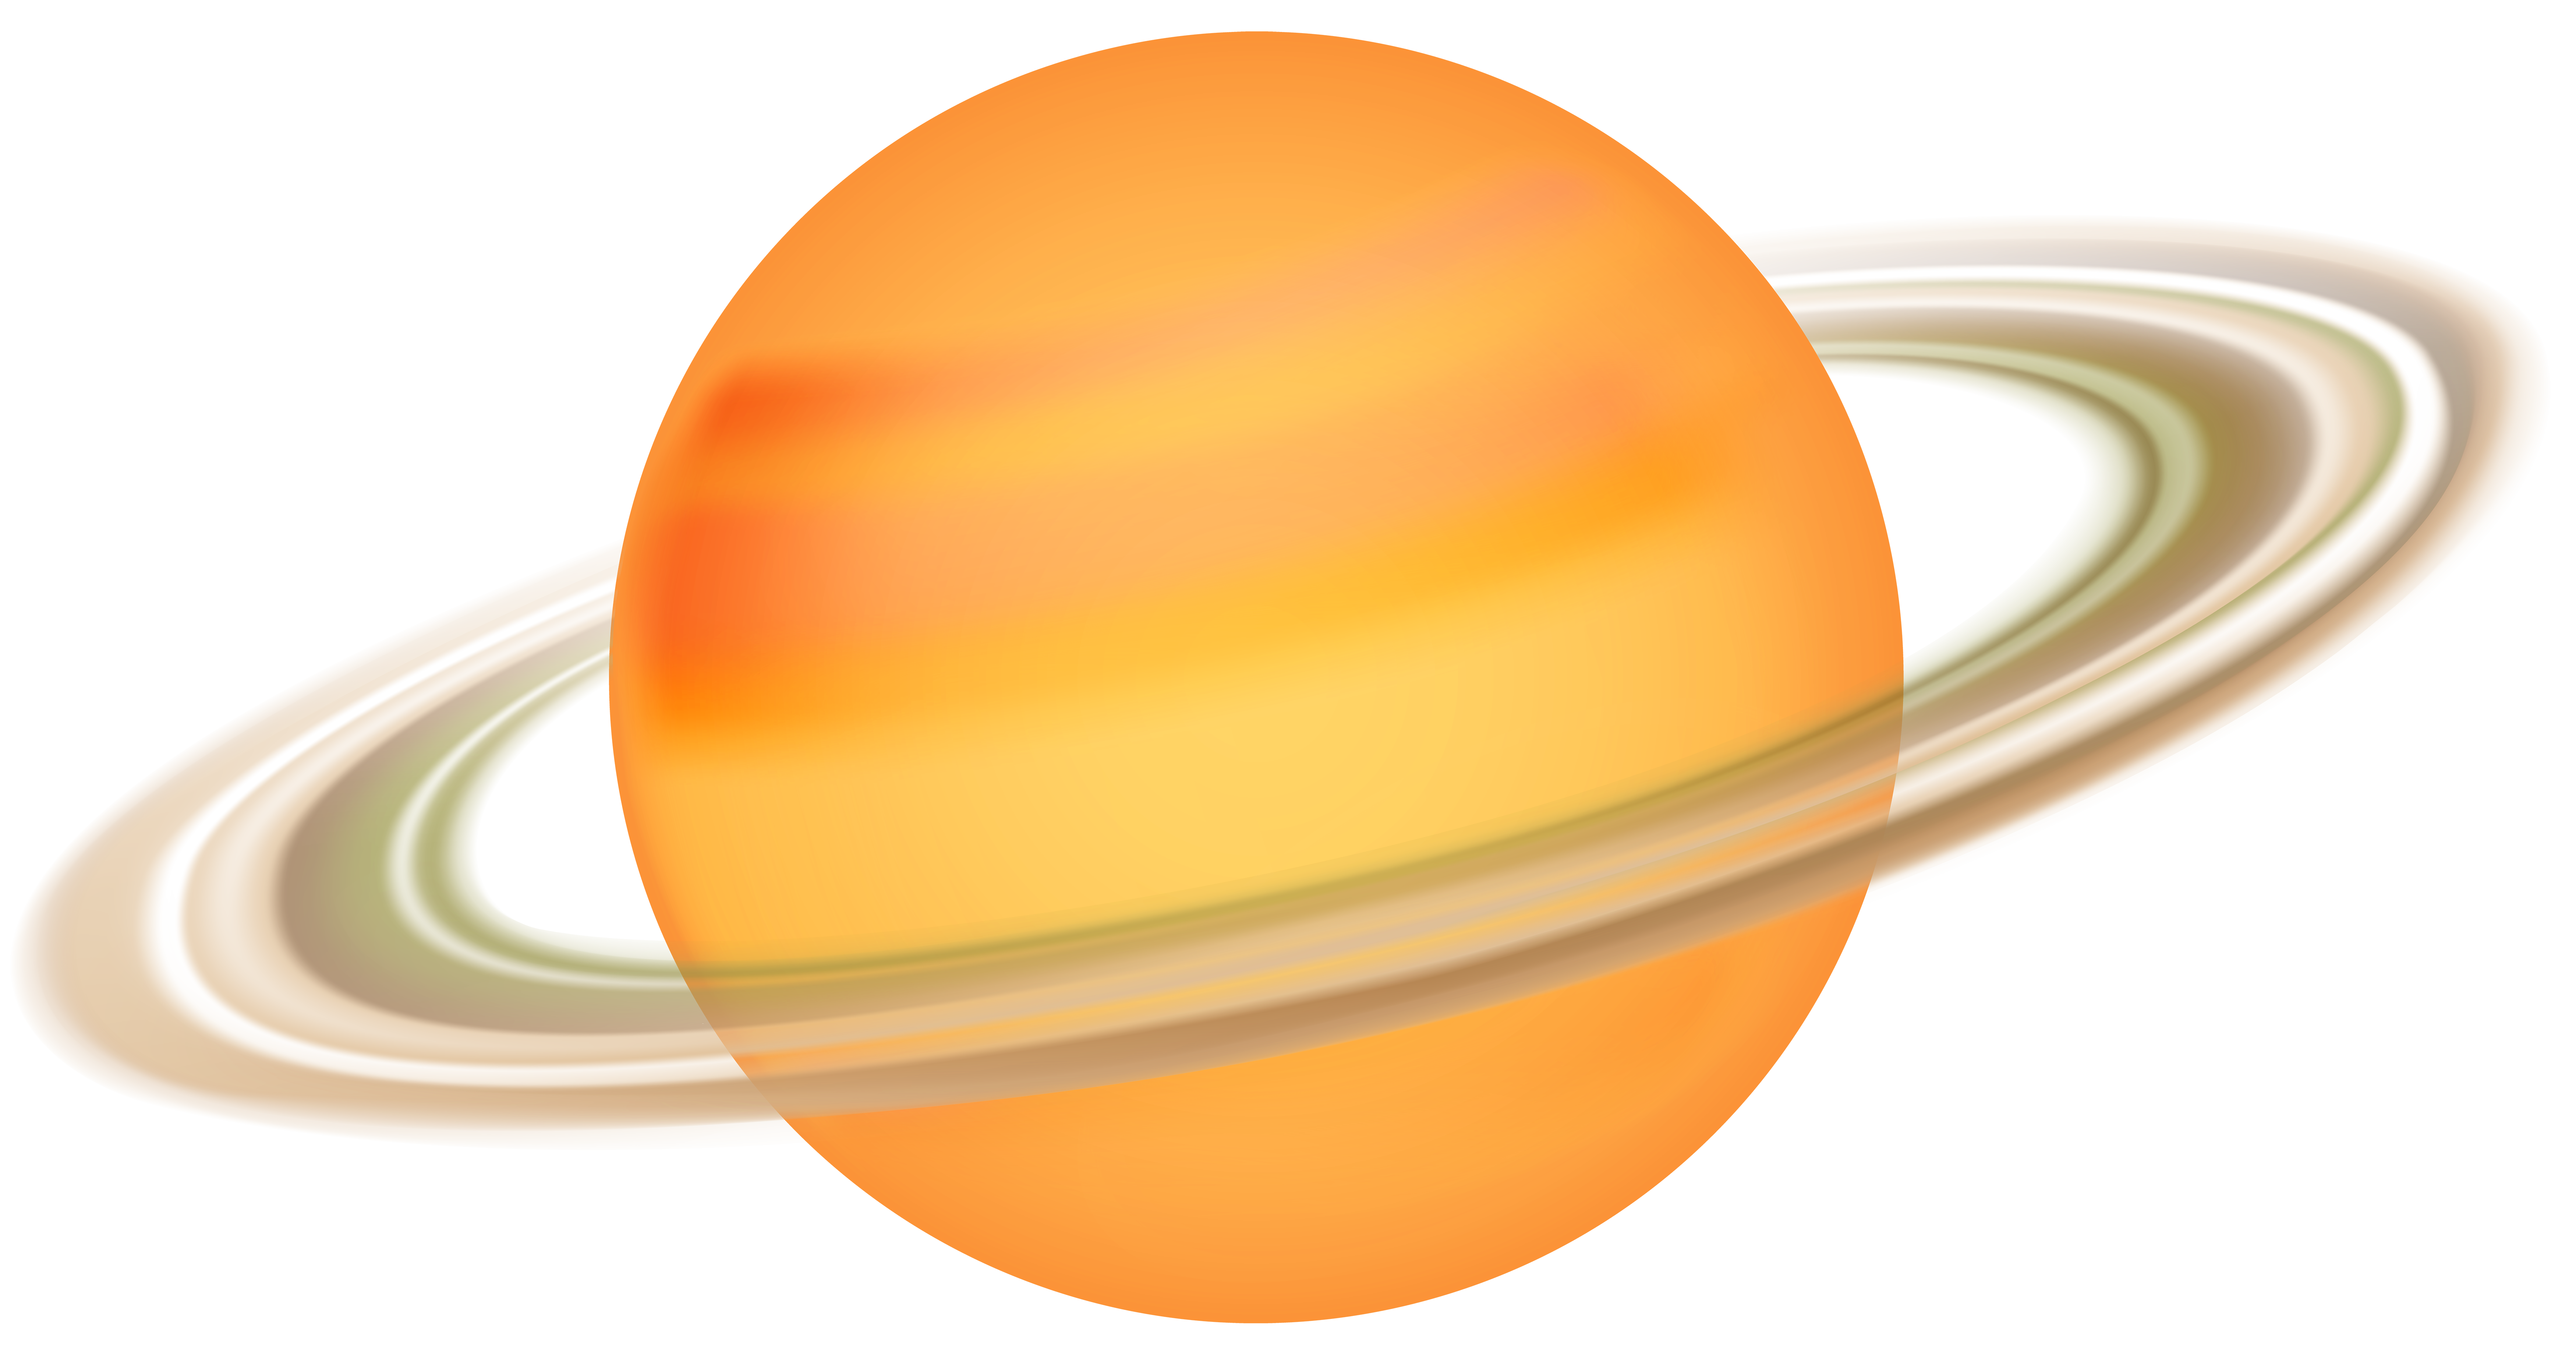 clipart free download Saturn clipart. Png clip art best